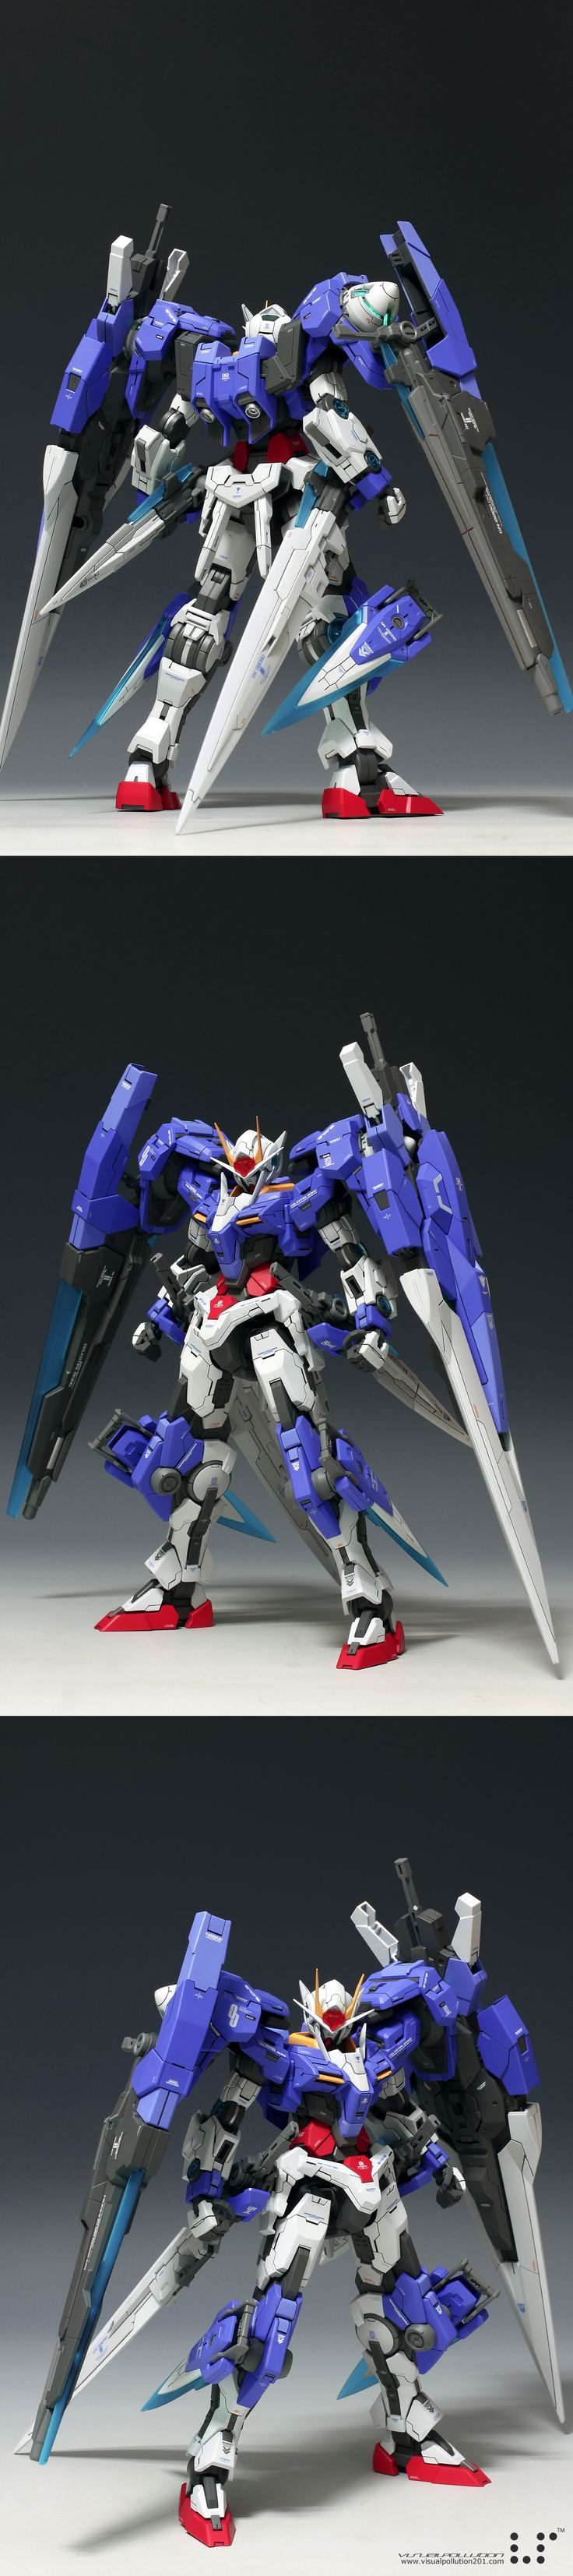 MG 1/100 Gundam Seven Sword/G: Latest Work by visualpollution. Full Photoreview [WIP too] Wallpaper Size Images | GUNJAP